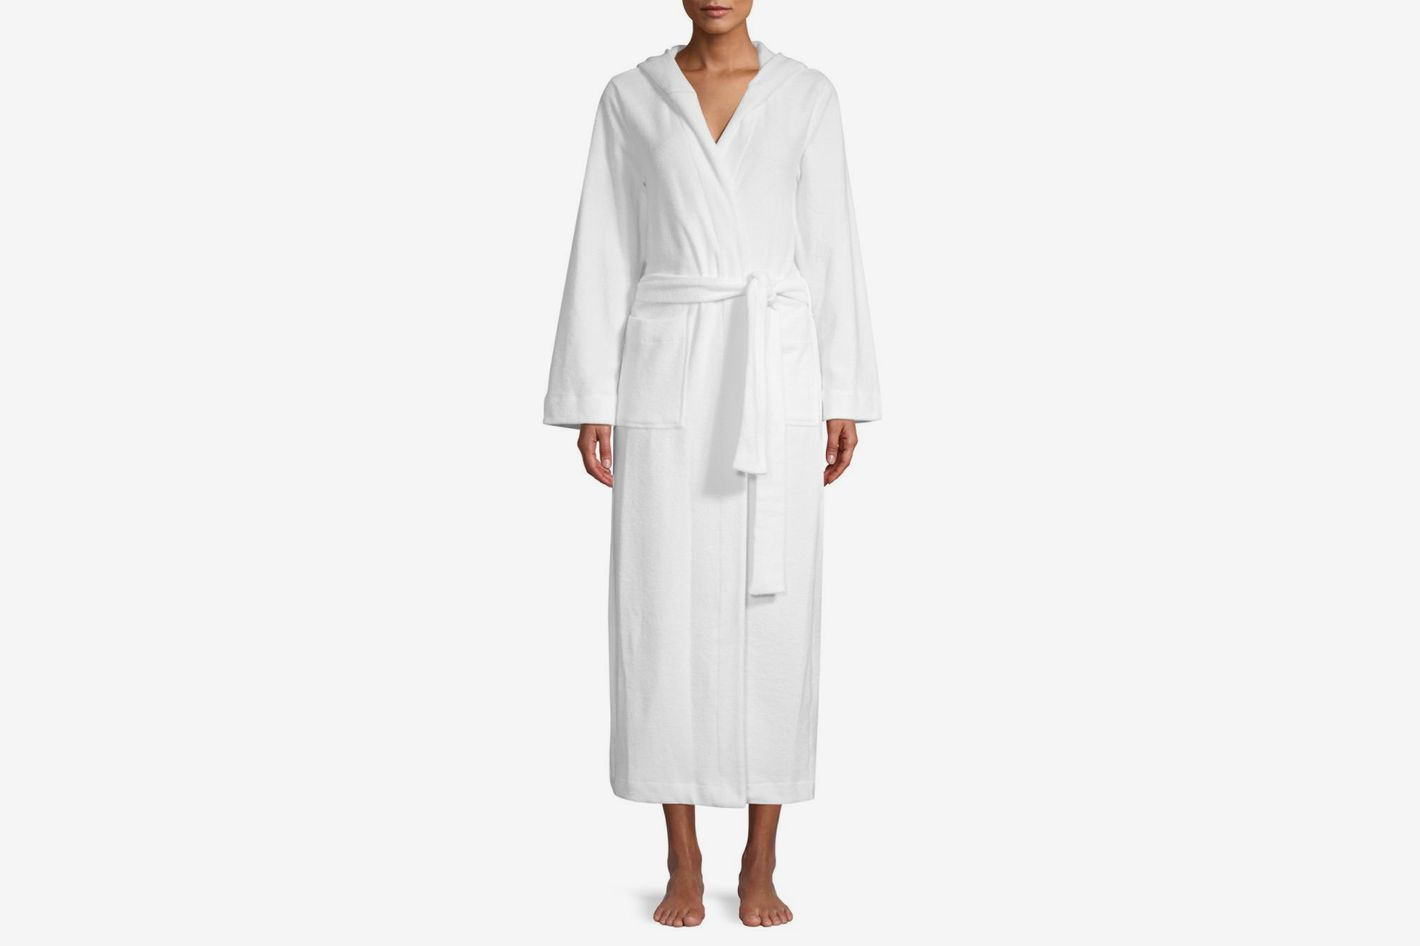 be153dfd0a 15 Best Bathrobes for Women 2018